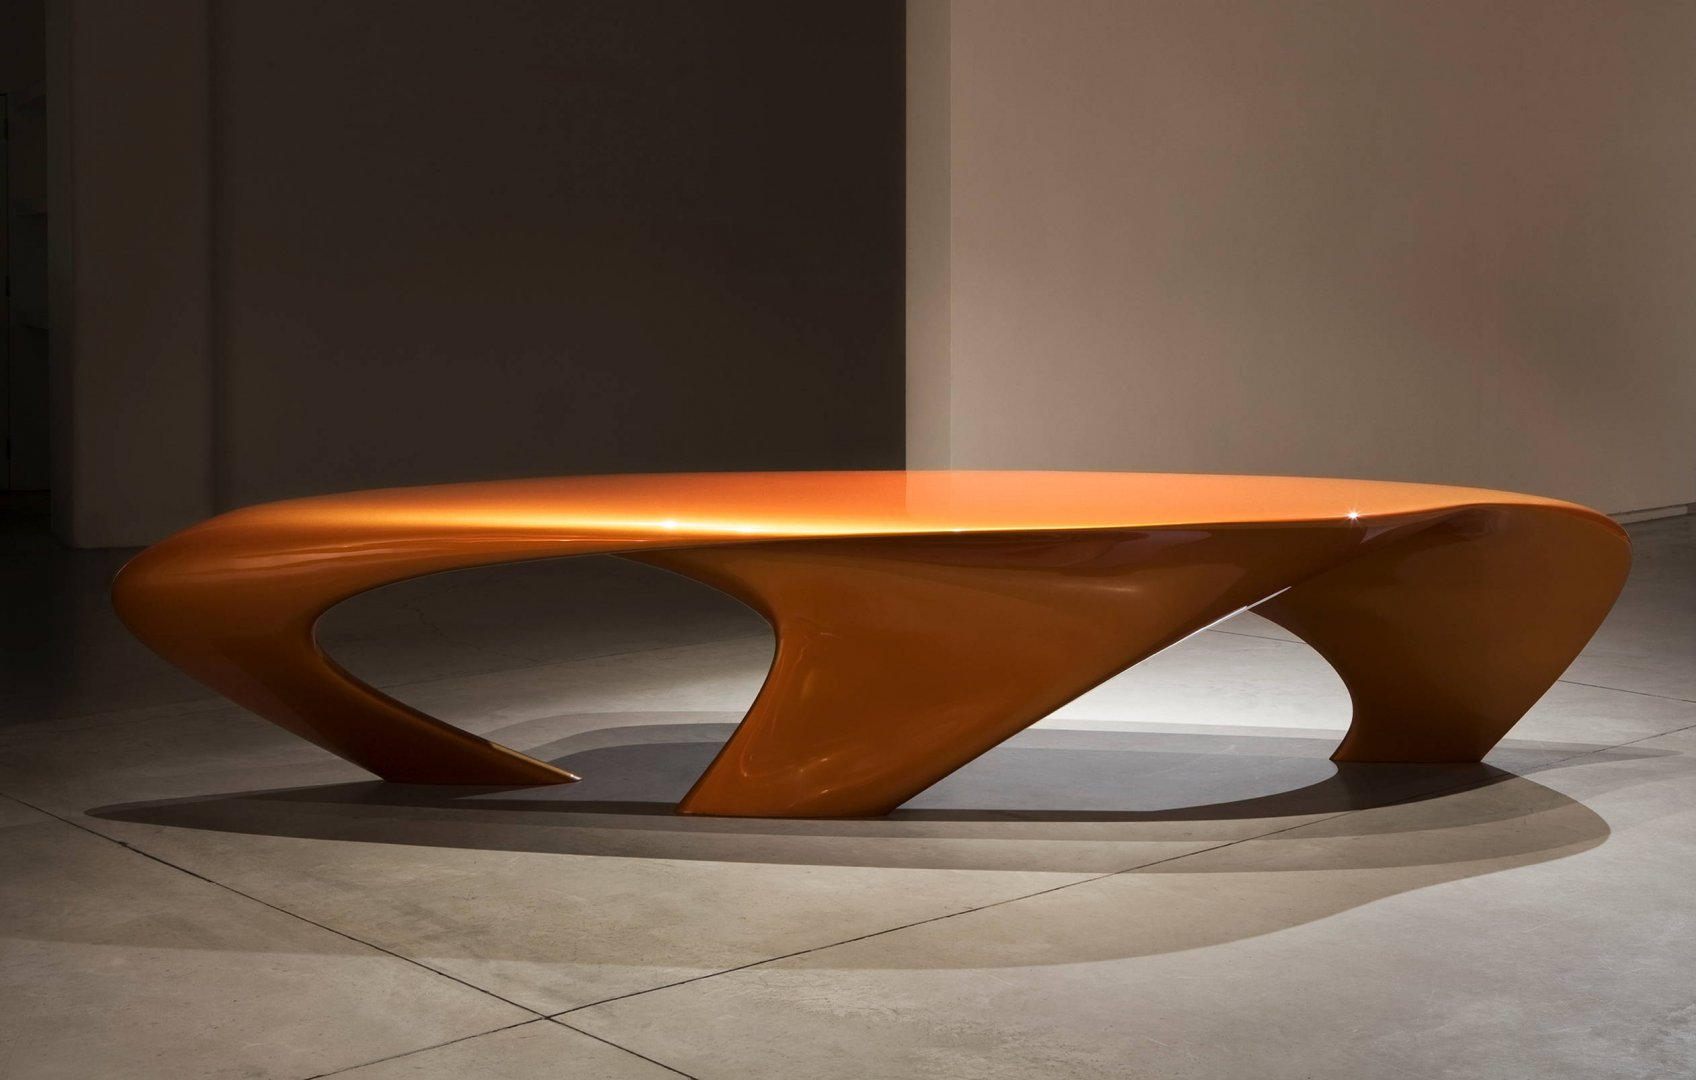 Dune Table by Zaha Hadid